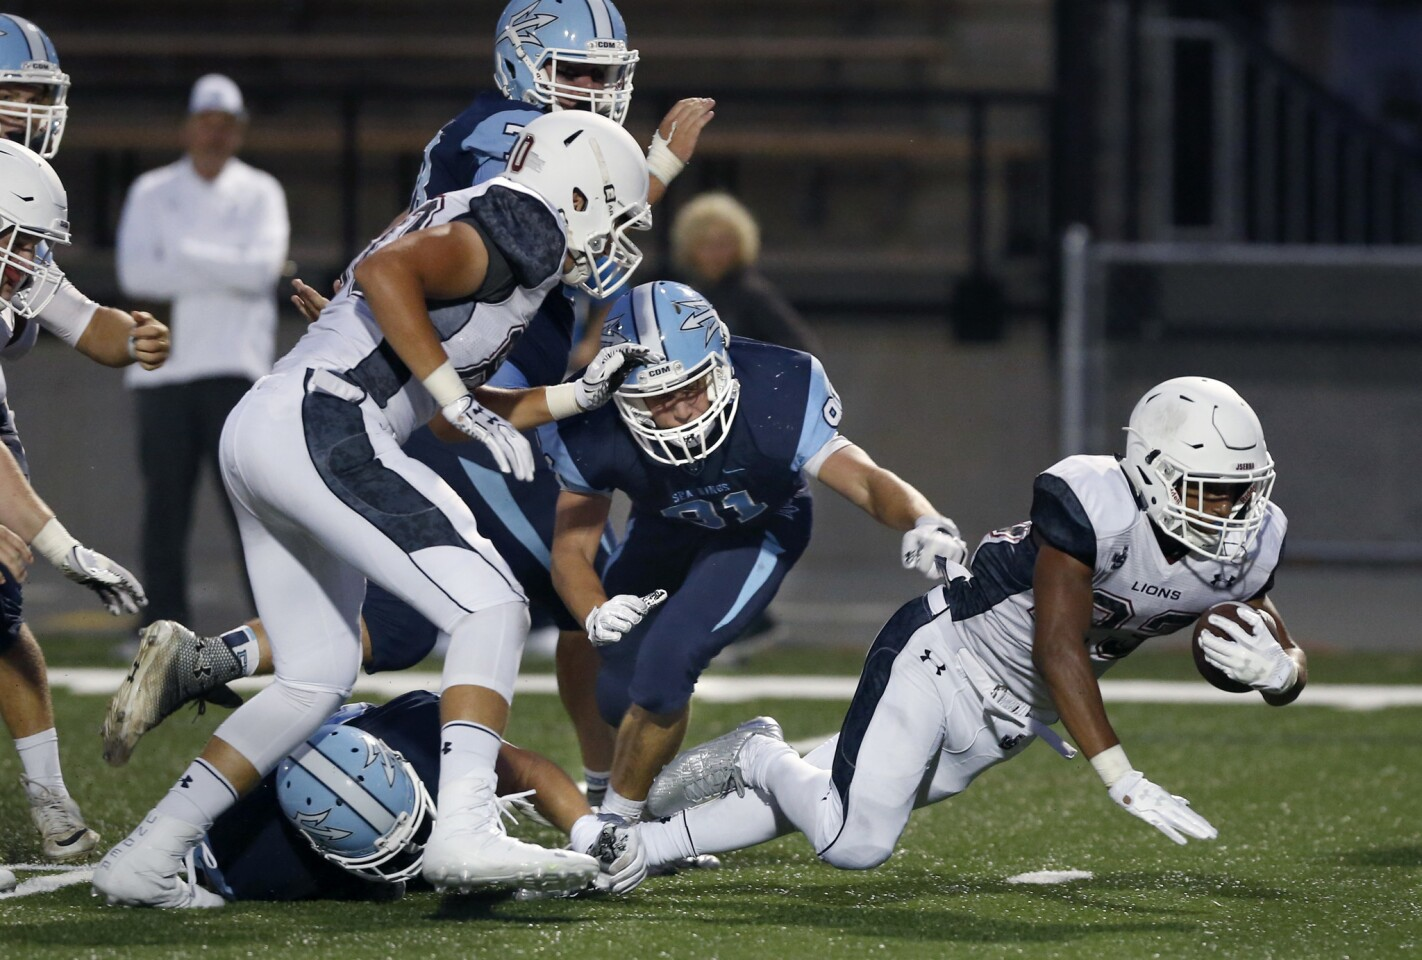 Photo Gallery: Corona del Mar football vs. JSerra